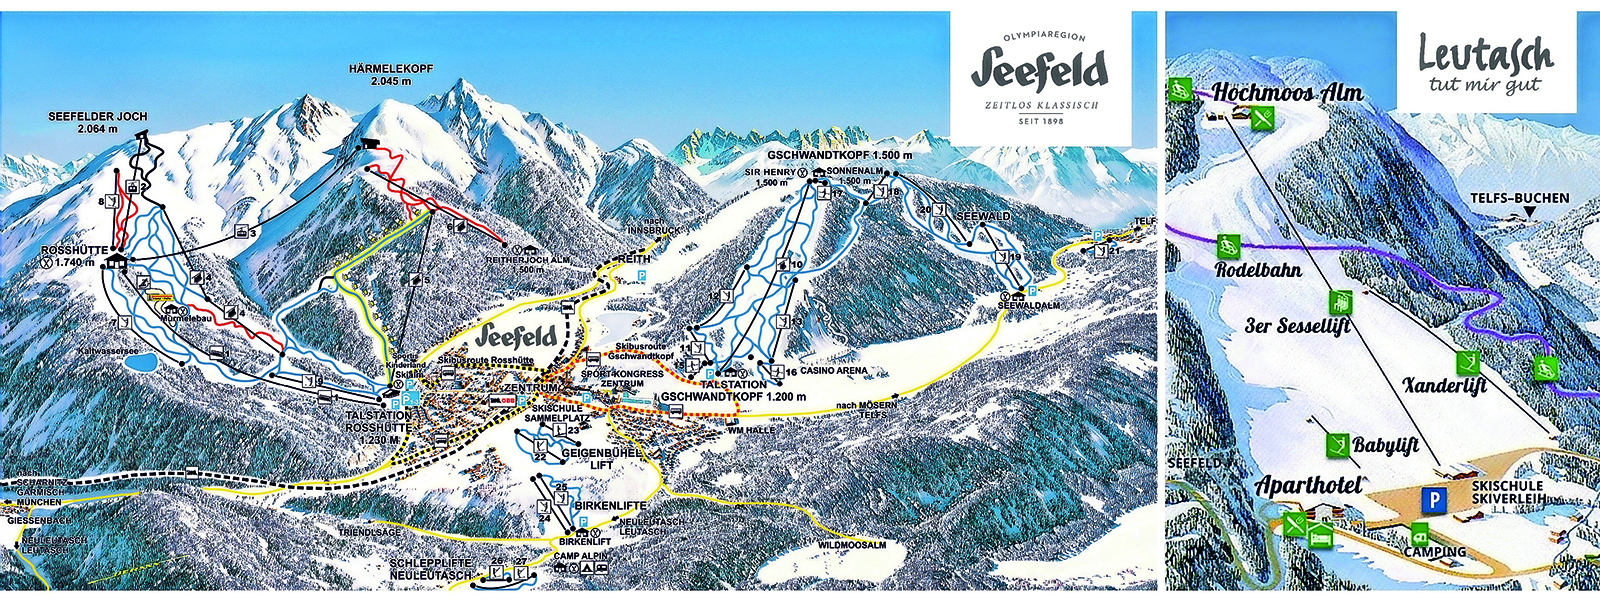 Winterplan mit Skipisten in Seefeld